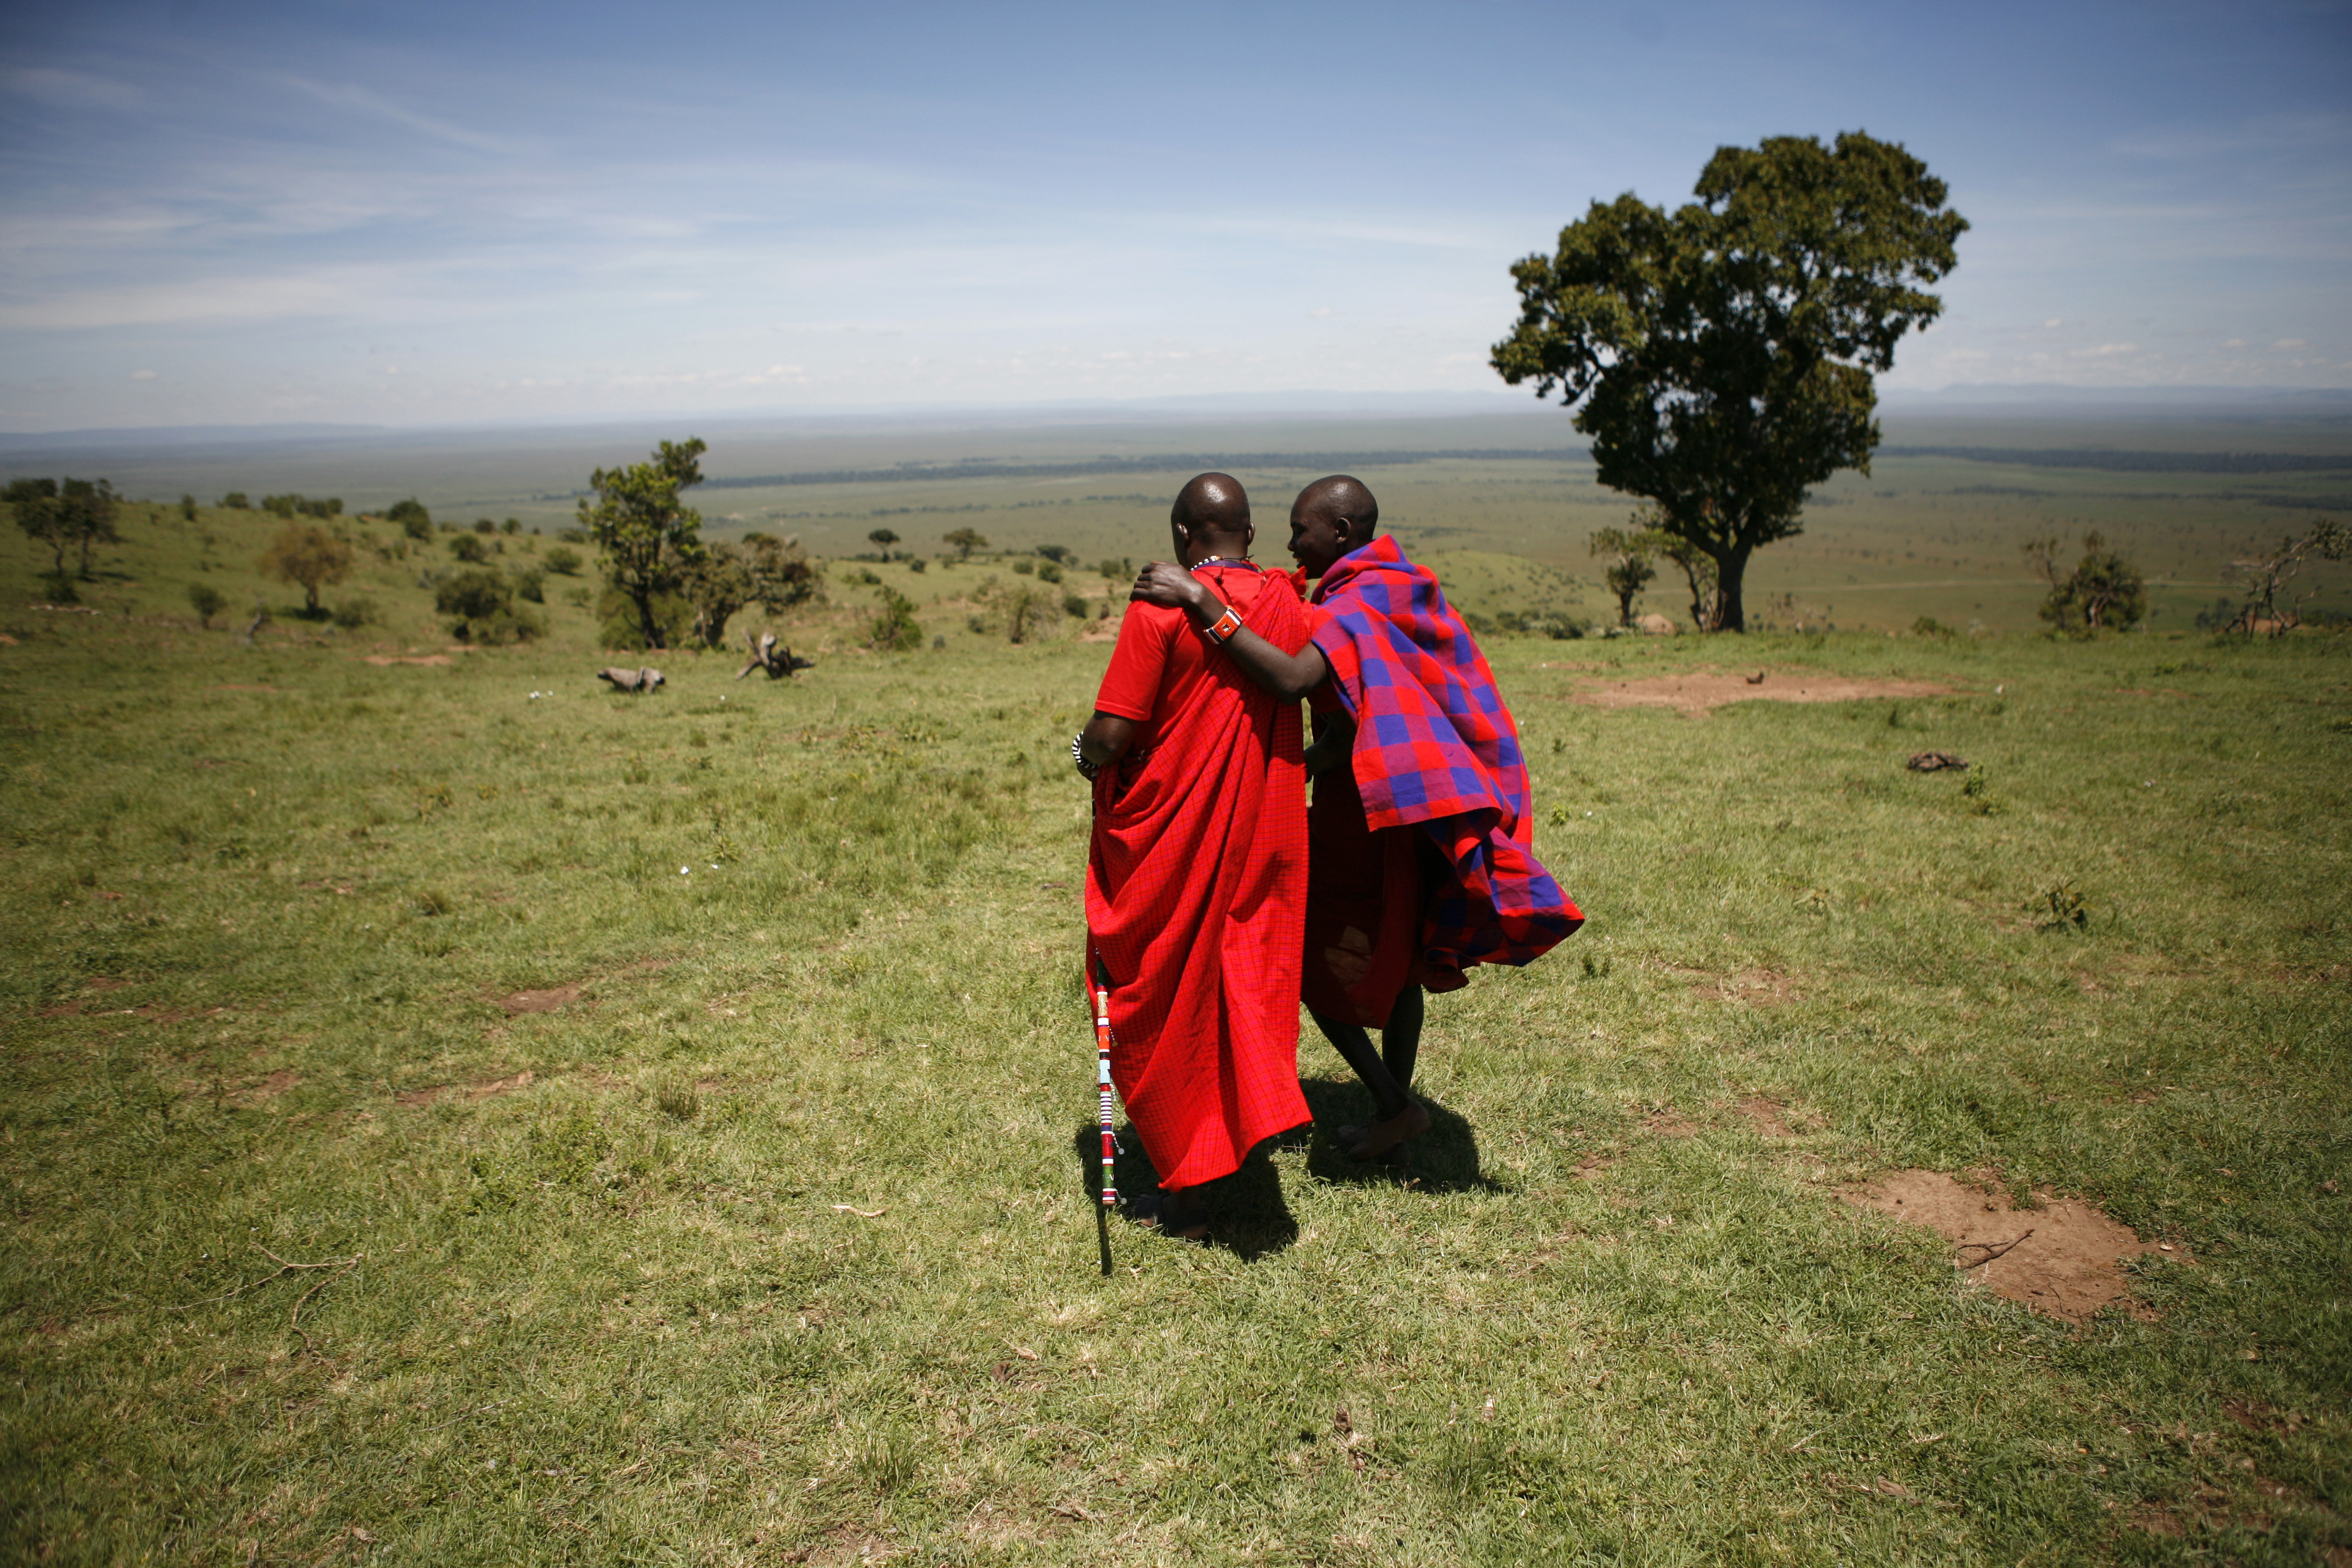 Two Maasai men walk outside Enkereri village near Masai Mara Game Reserve April 3, 2008.A rocky cliff overlooking the Reserve marks a new front line in a conflict between people and wildlife that threatens the revival of Kenya's $1 billion tourism industry. Riots and ethnic violence that exploded after a disputed December 27 vote scared away almost all the foreign holidaymakers. The disappearance of tourist dollars has disturbed the delicate balance between predators in the reserve and the Maasai tribesmen living next to it, by causing the breakdown of a compensation scheme meant to stop them hunting lions. Picture taken April 3, 2008. To match feature KENYA-WILDLIFE/ REUTERS/Radu Sigheti (KENYA ENVIRONMENT TRAVEL POLITICS)  BEST QUALITY AVAILABLE - GM1E57T1ECV01